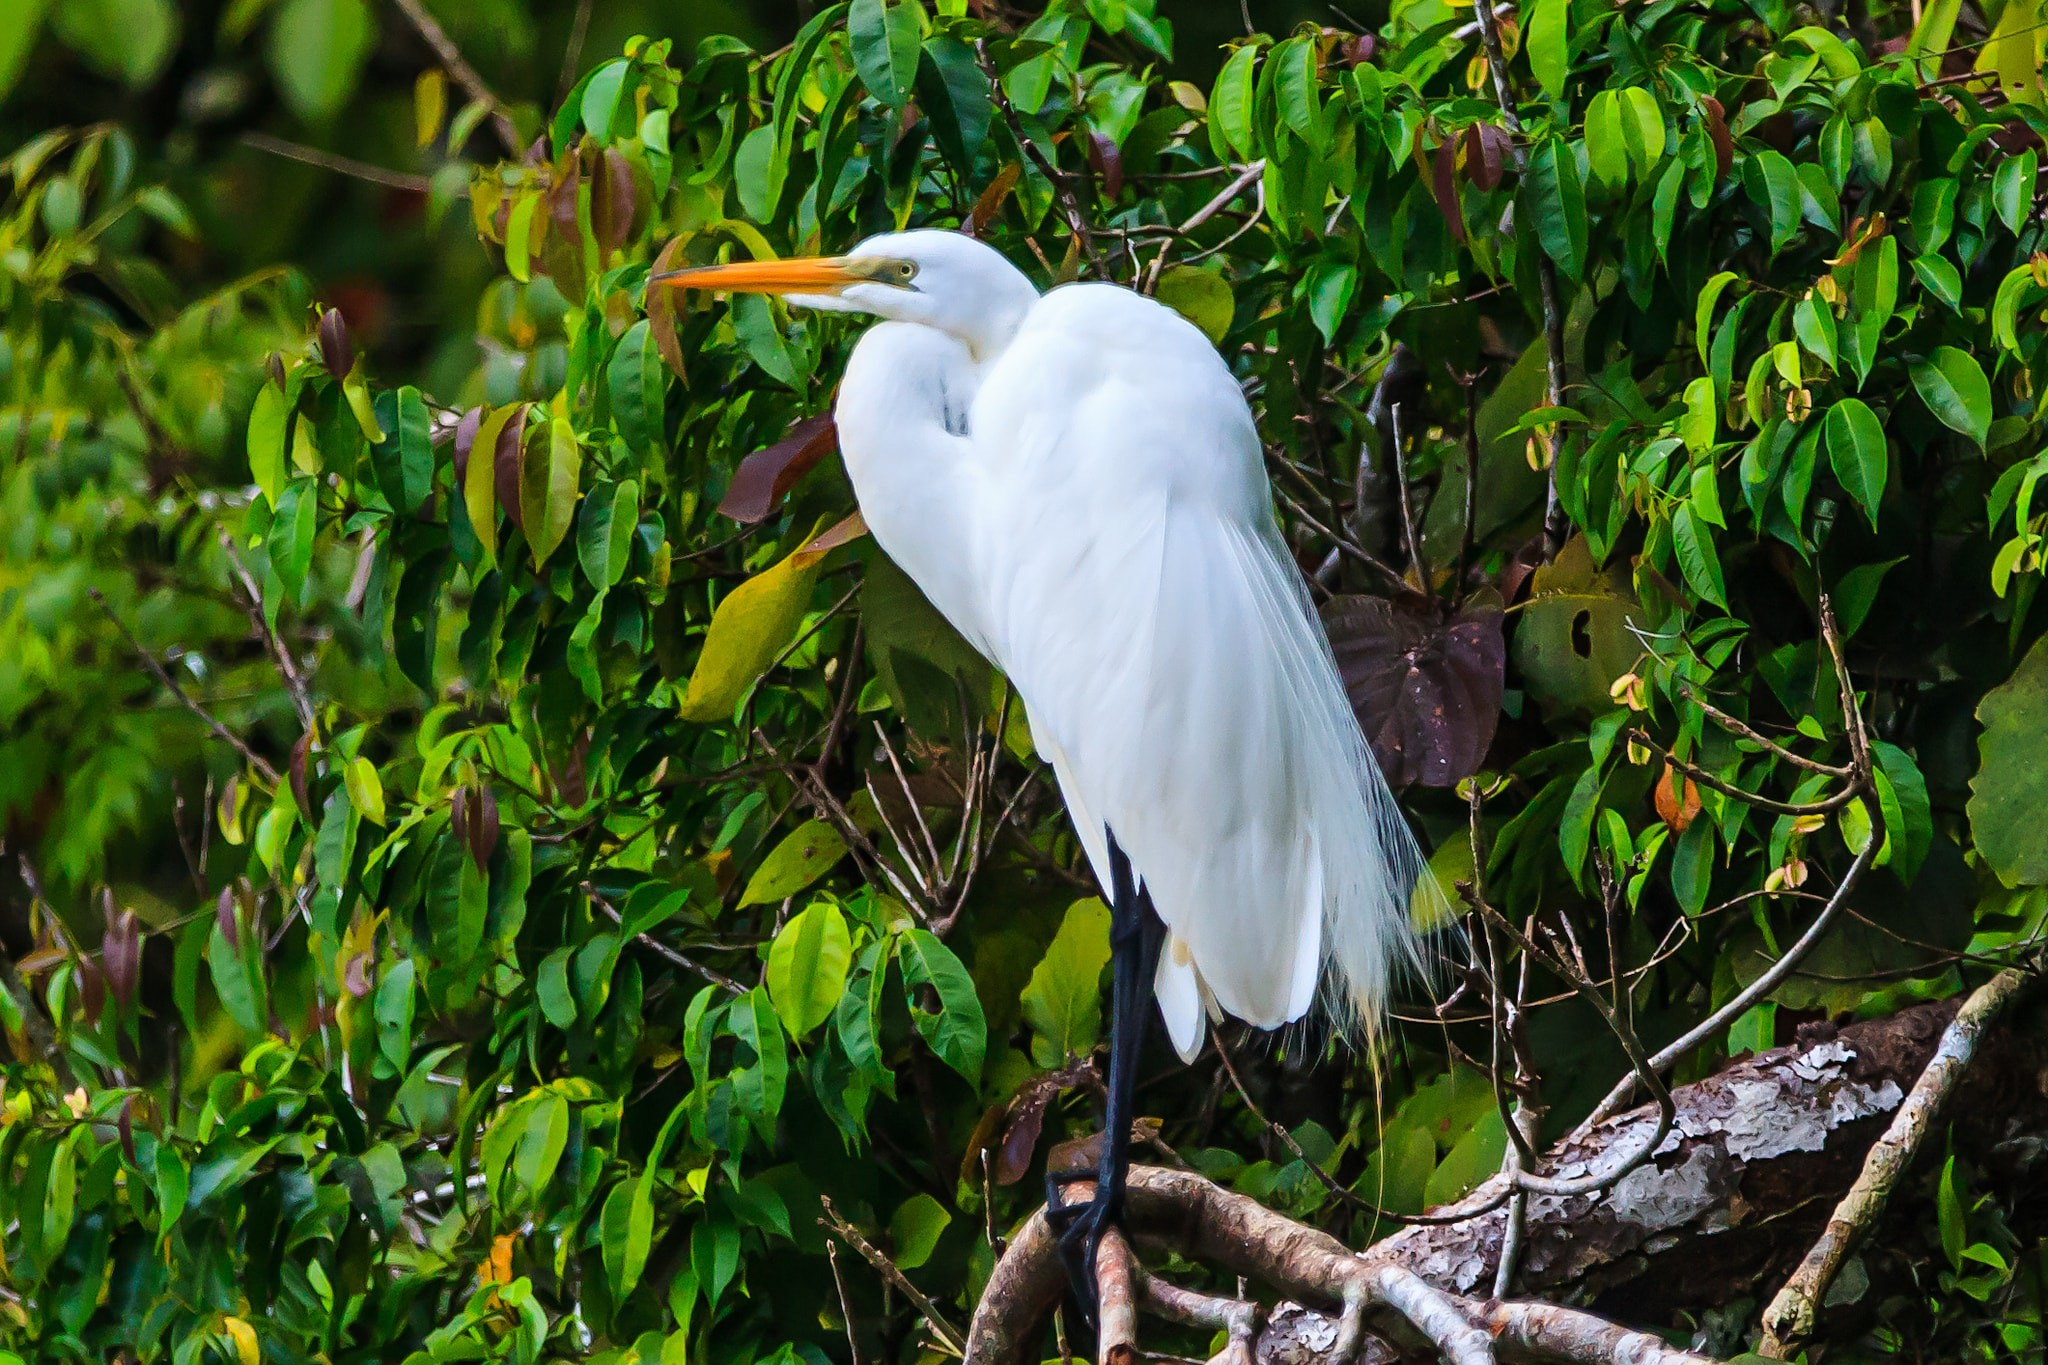 A Great Egret near Rio Dulce, Guatemala © Murray Foubister / flickr